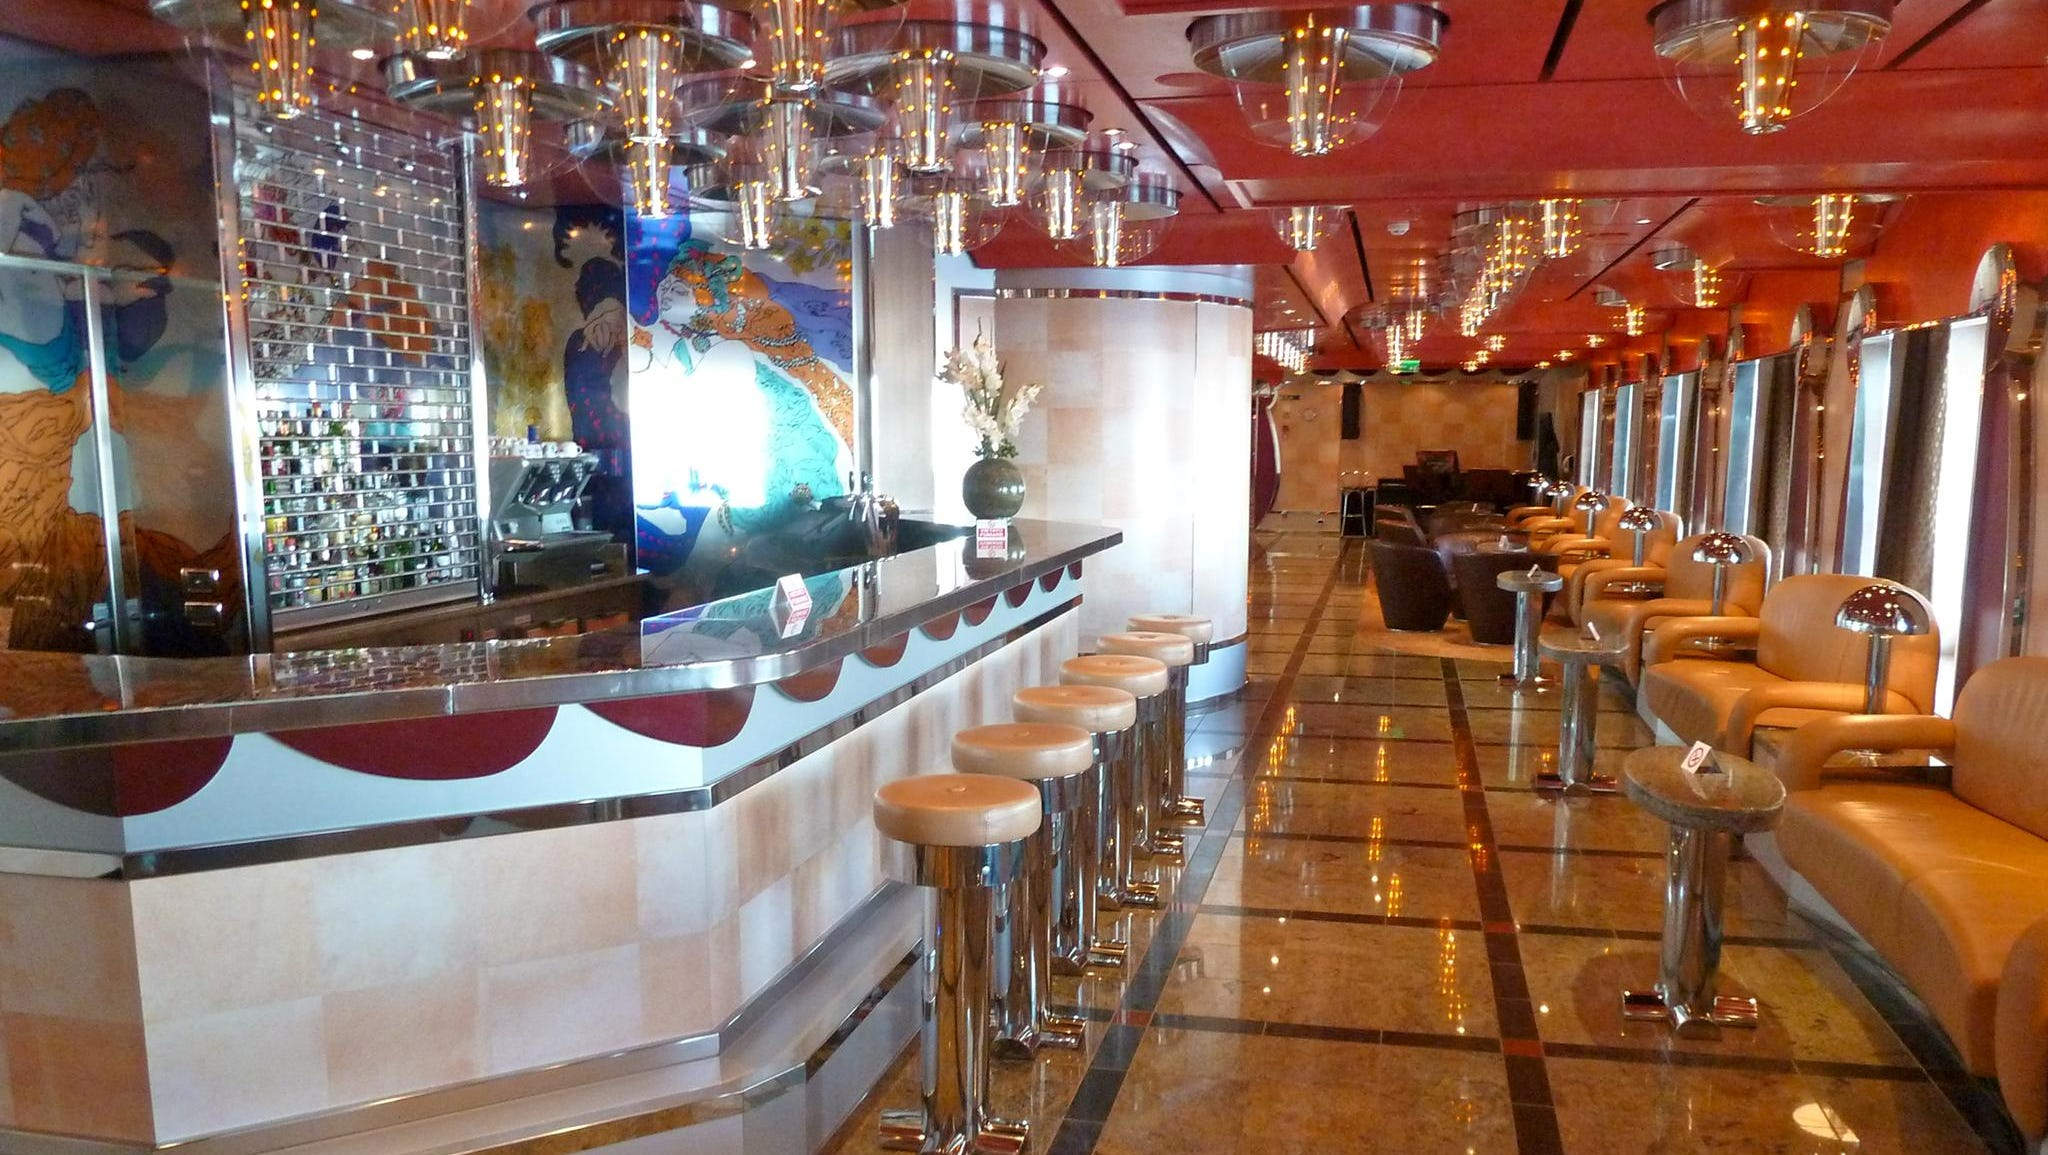 Azalea Deck continues aft on the starboard side of Atrio Deliziosa with the Lounge and Bar Vanilla, a popular pre- and post-dinner gathering spot.